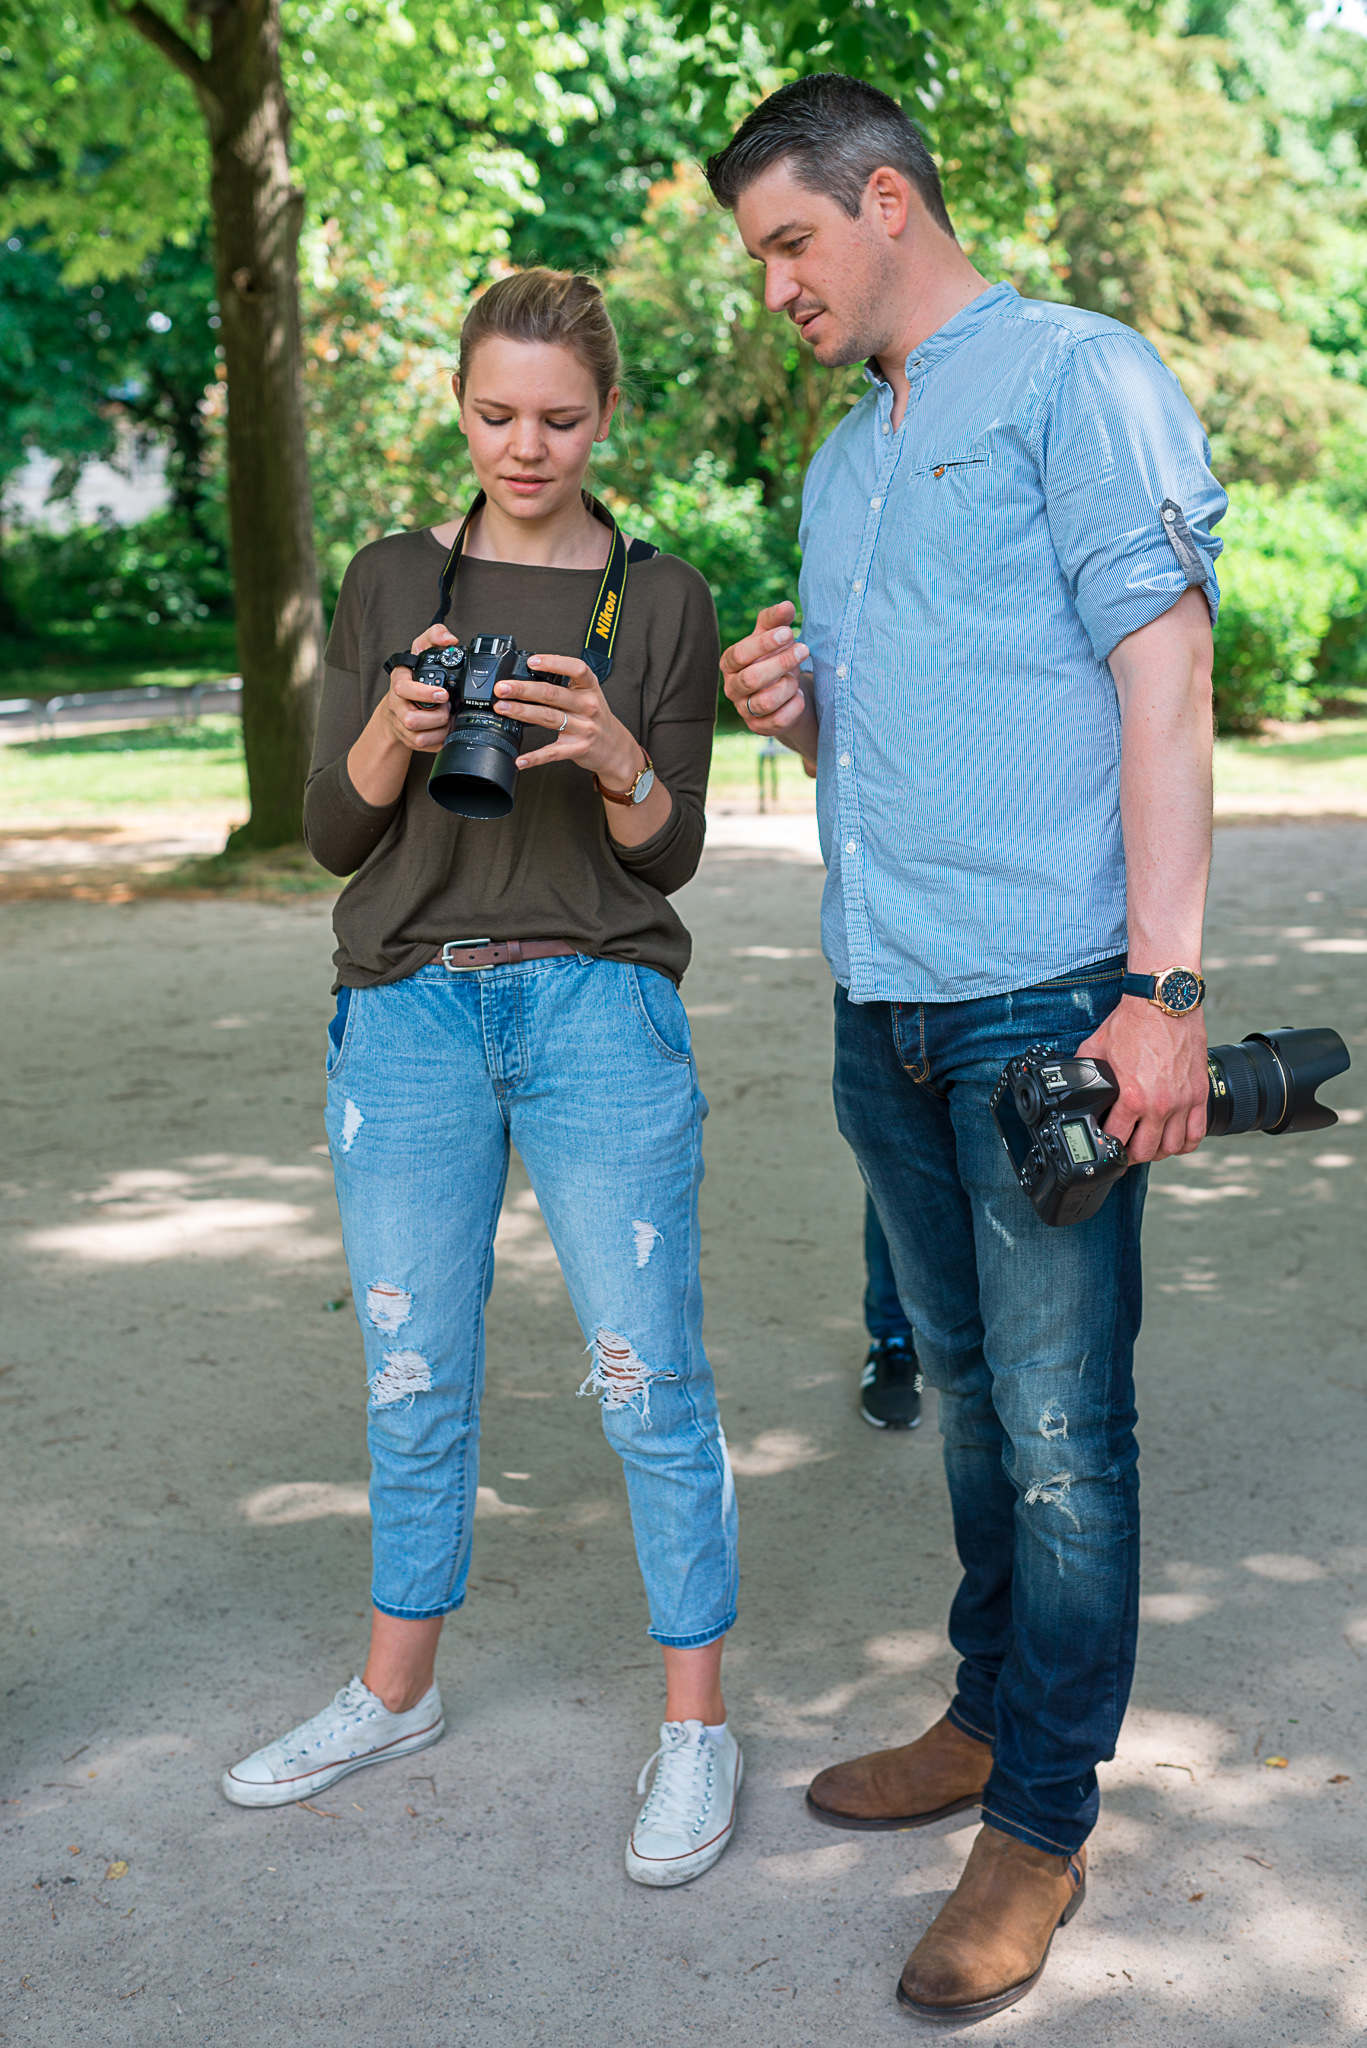 Portraitkurs behind the scenes-5.jpg